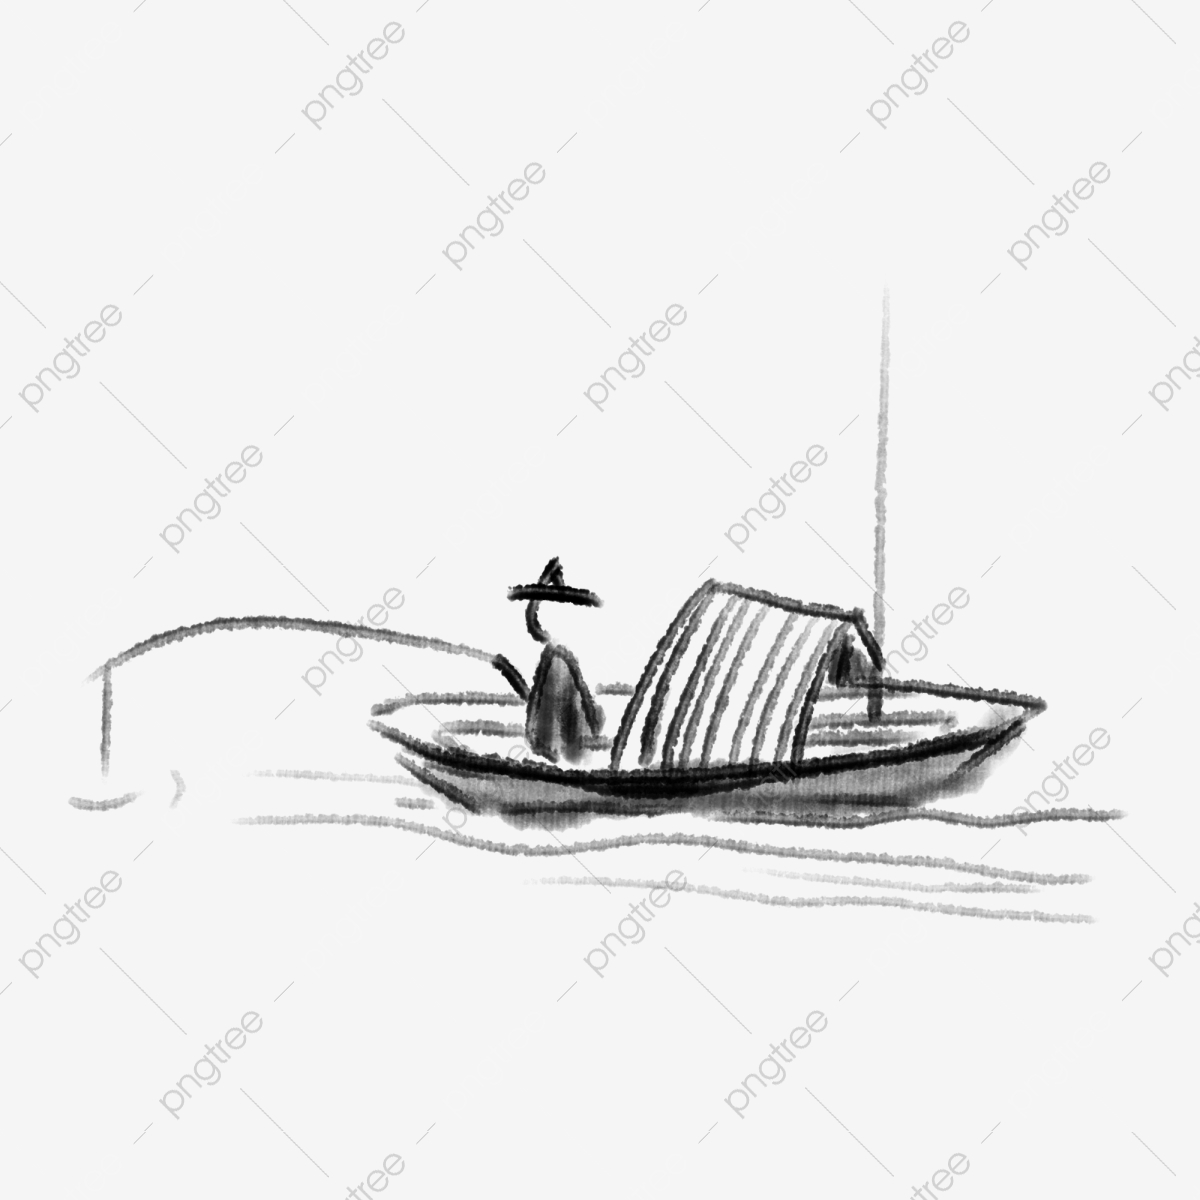 Chinese Style Ink Painting Chinese Wind Fishing Boat Hand Drawn Fishing Boat Cartoon Fishing Boat Ink Stick Figure Png Transparent Clipart Image And Psd File For Free Download